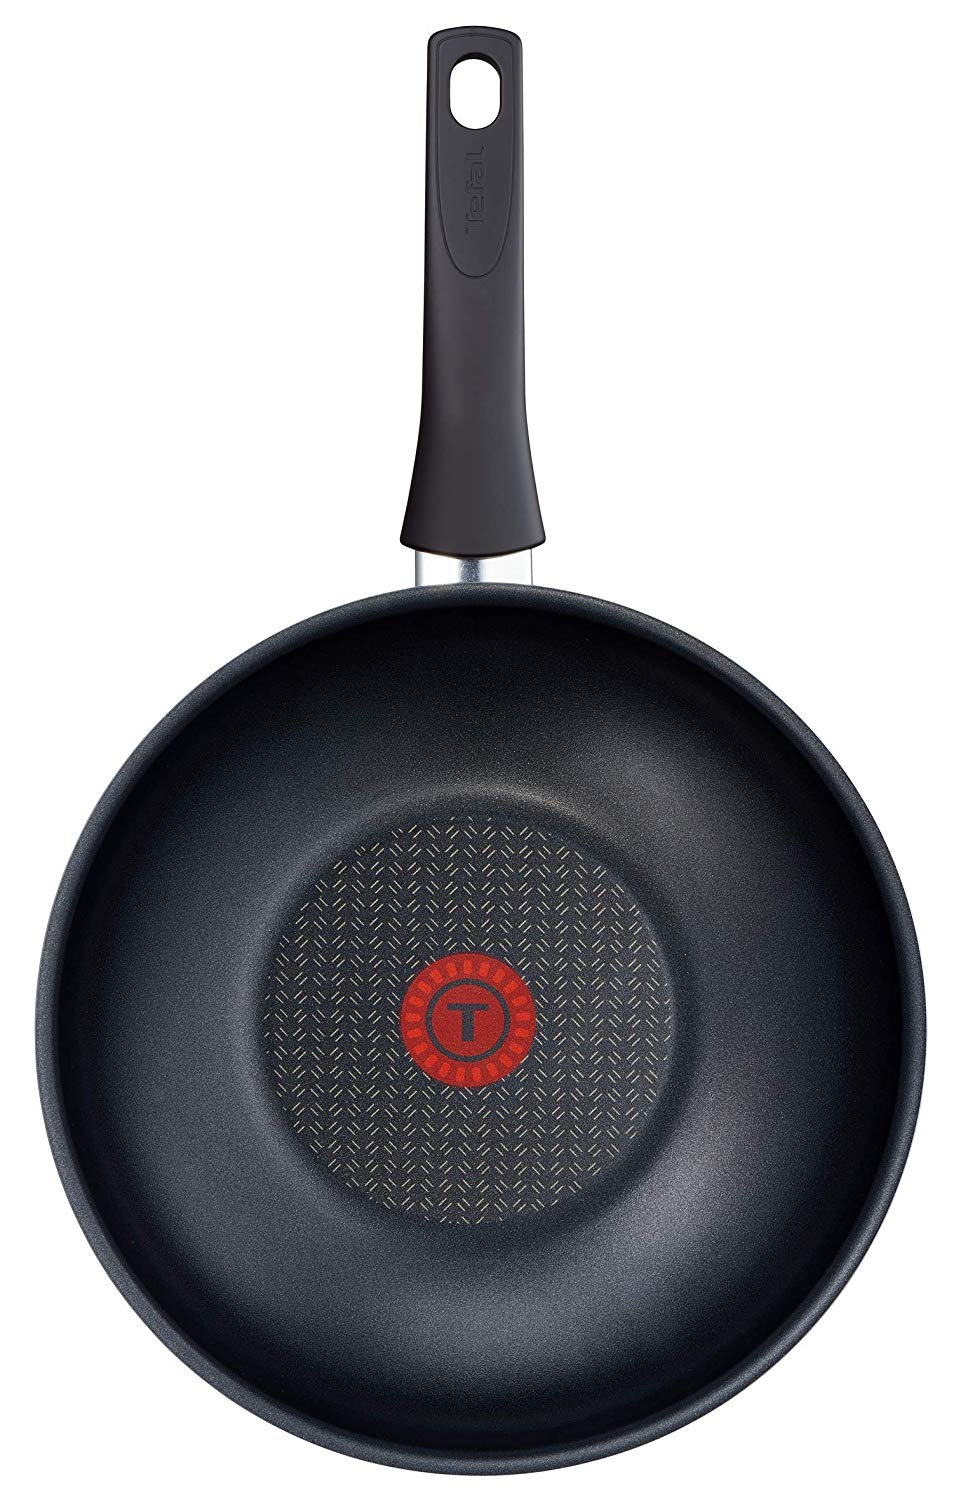 Tefal Wokpfanne amazon